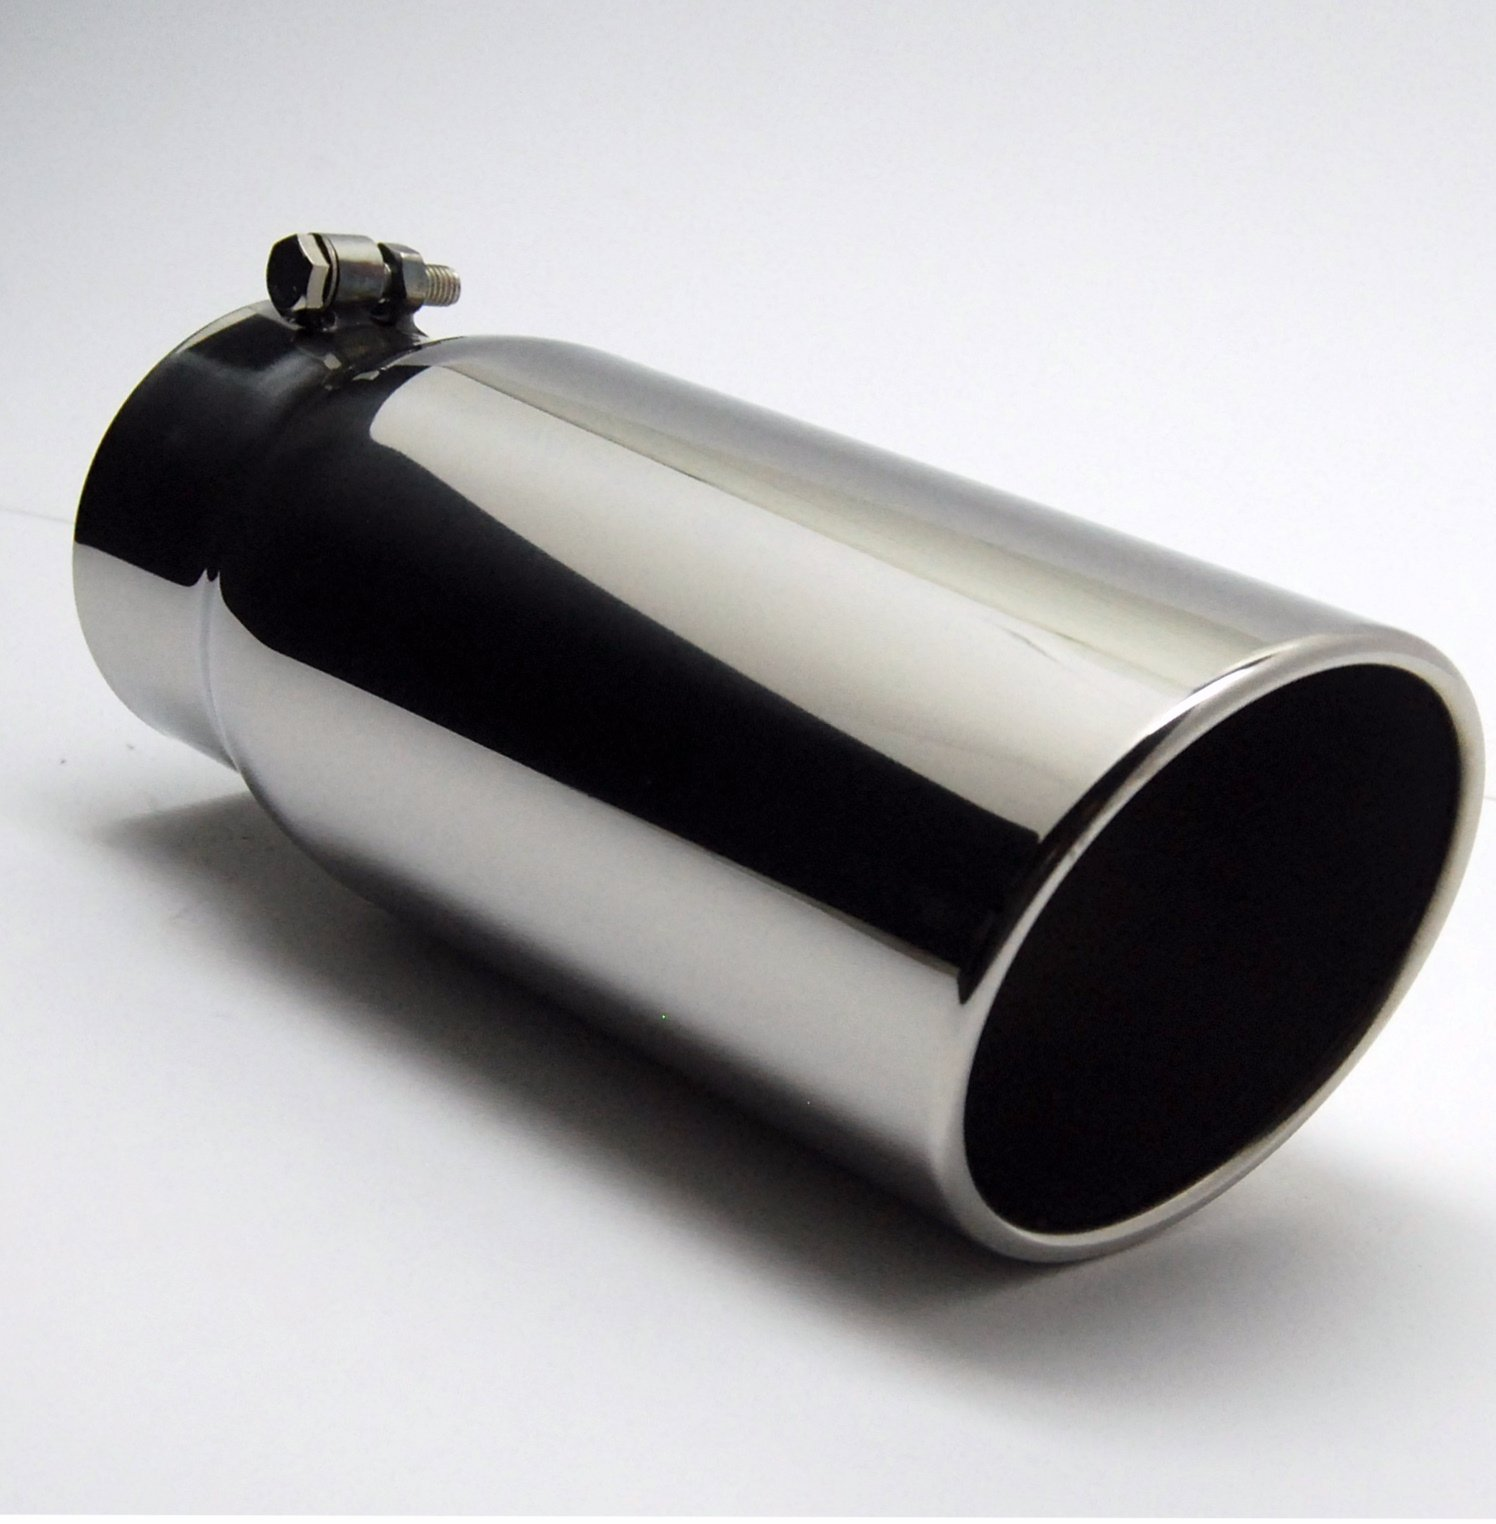 Diesel Exhaust Tip Stainless Steel 6.00 Dia X 12 inches Long 5 Inch Inlet Wesdon Exhaust Tip